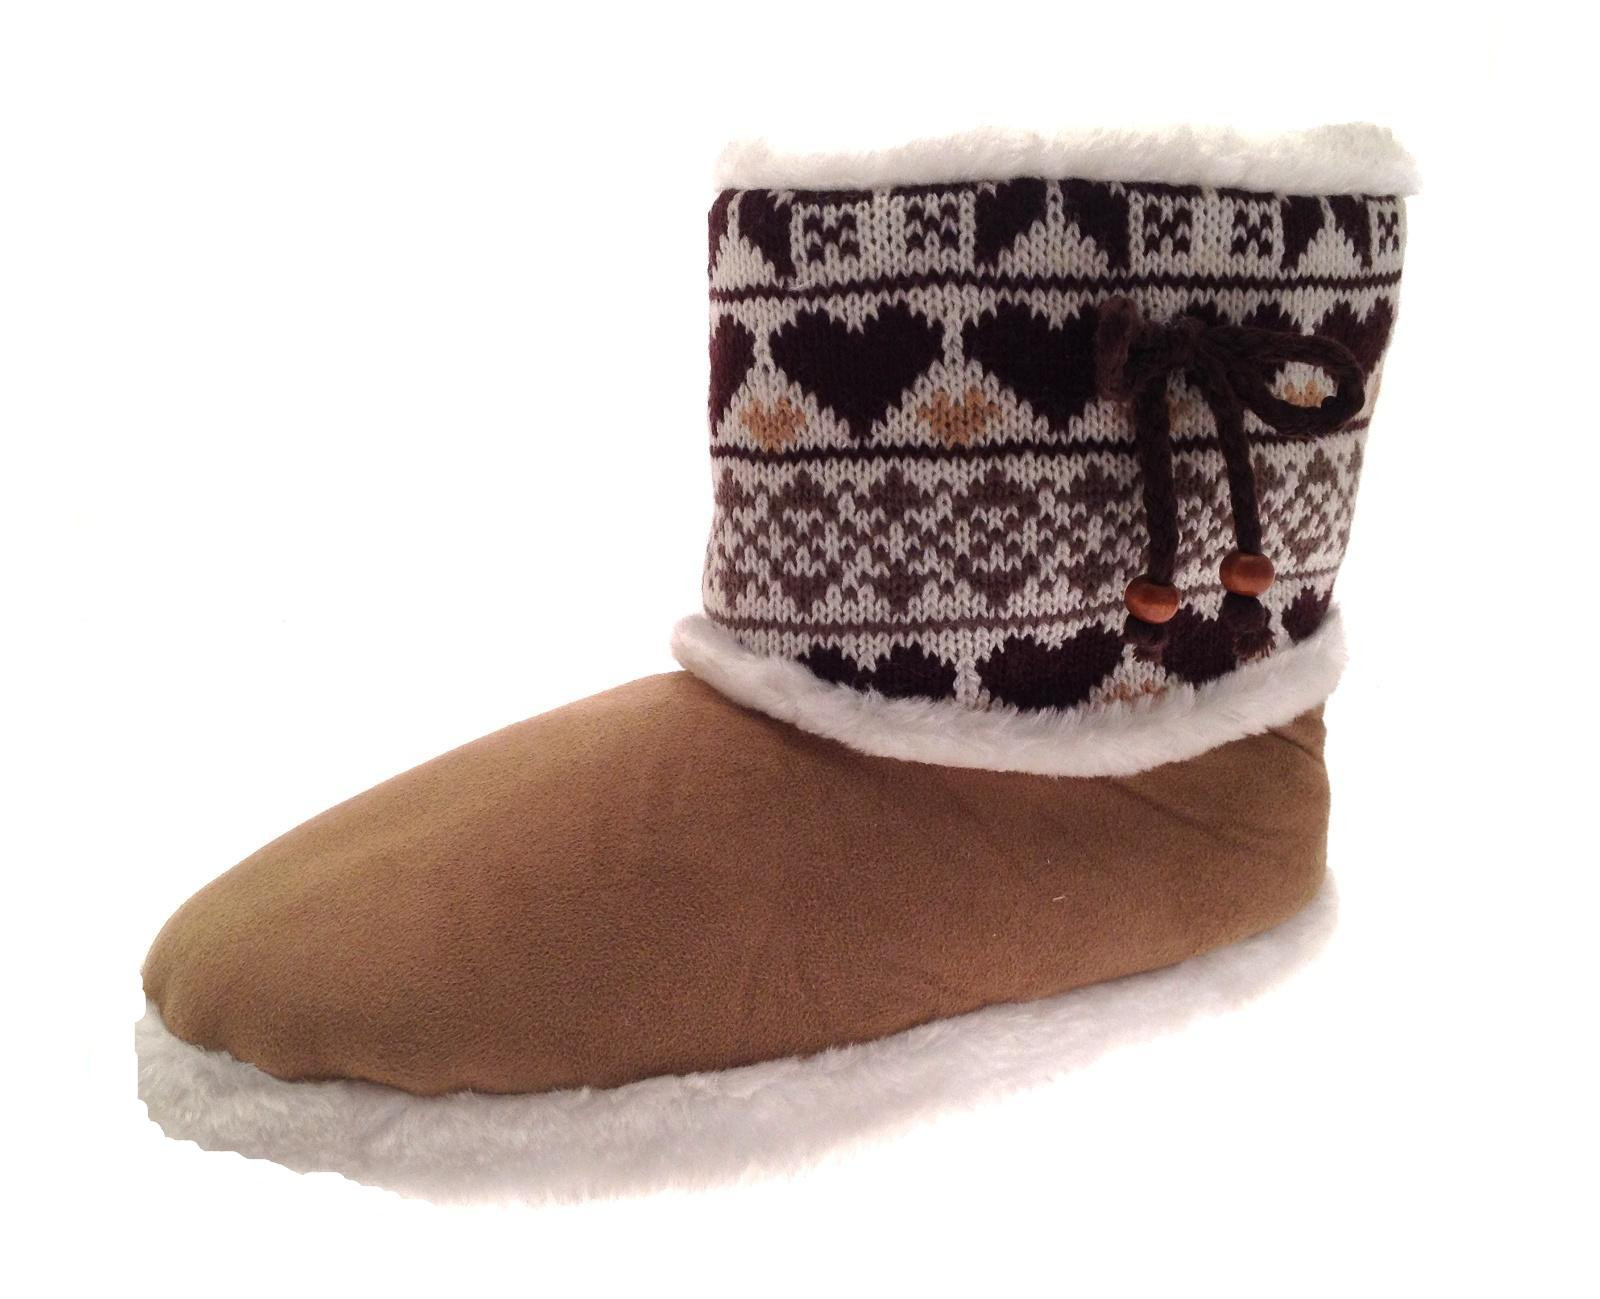 Best Of Womens Slipper Boots Knitted Fur Fleece Booties Girls Knitted Slipper Boots Of Superb 41 Pics Knitted Slipper Boots